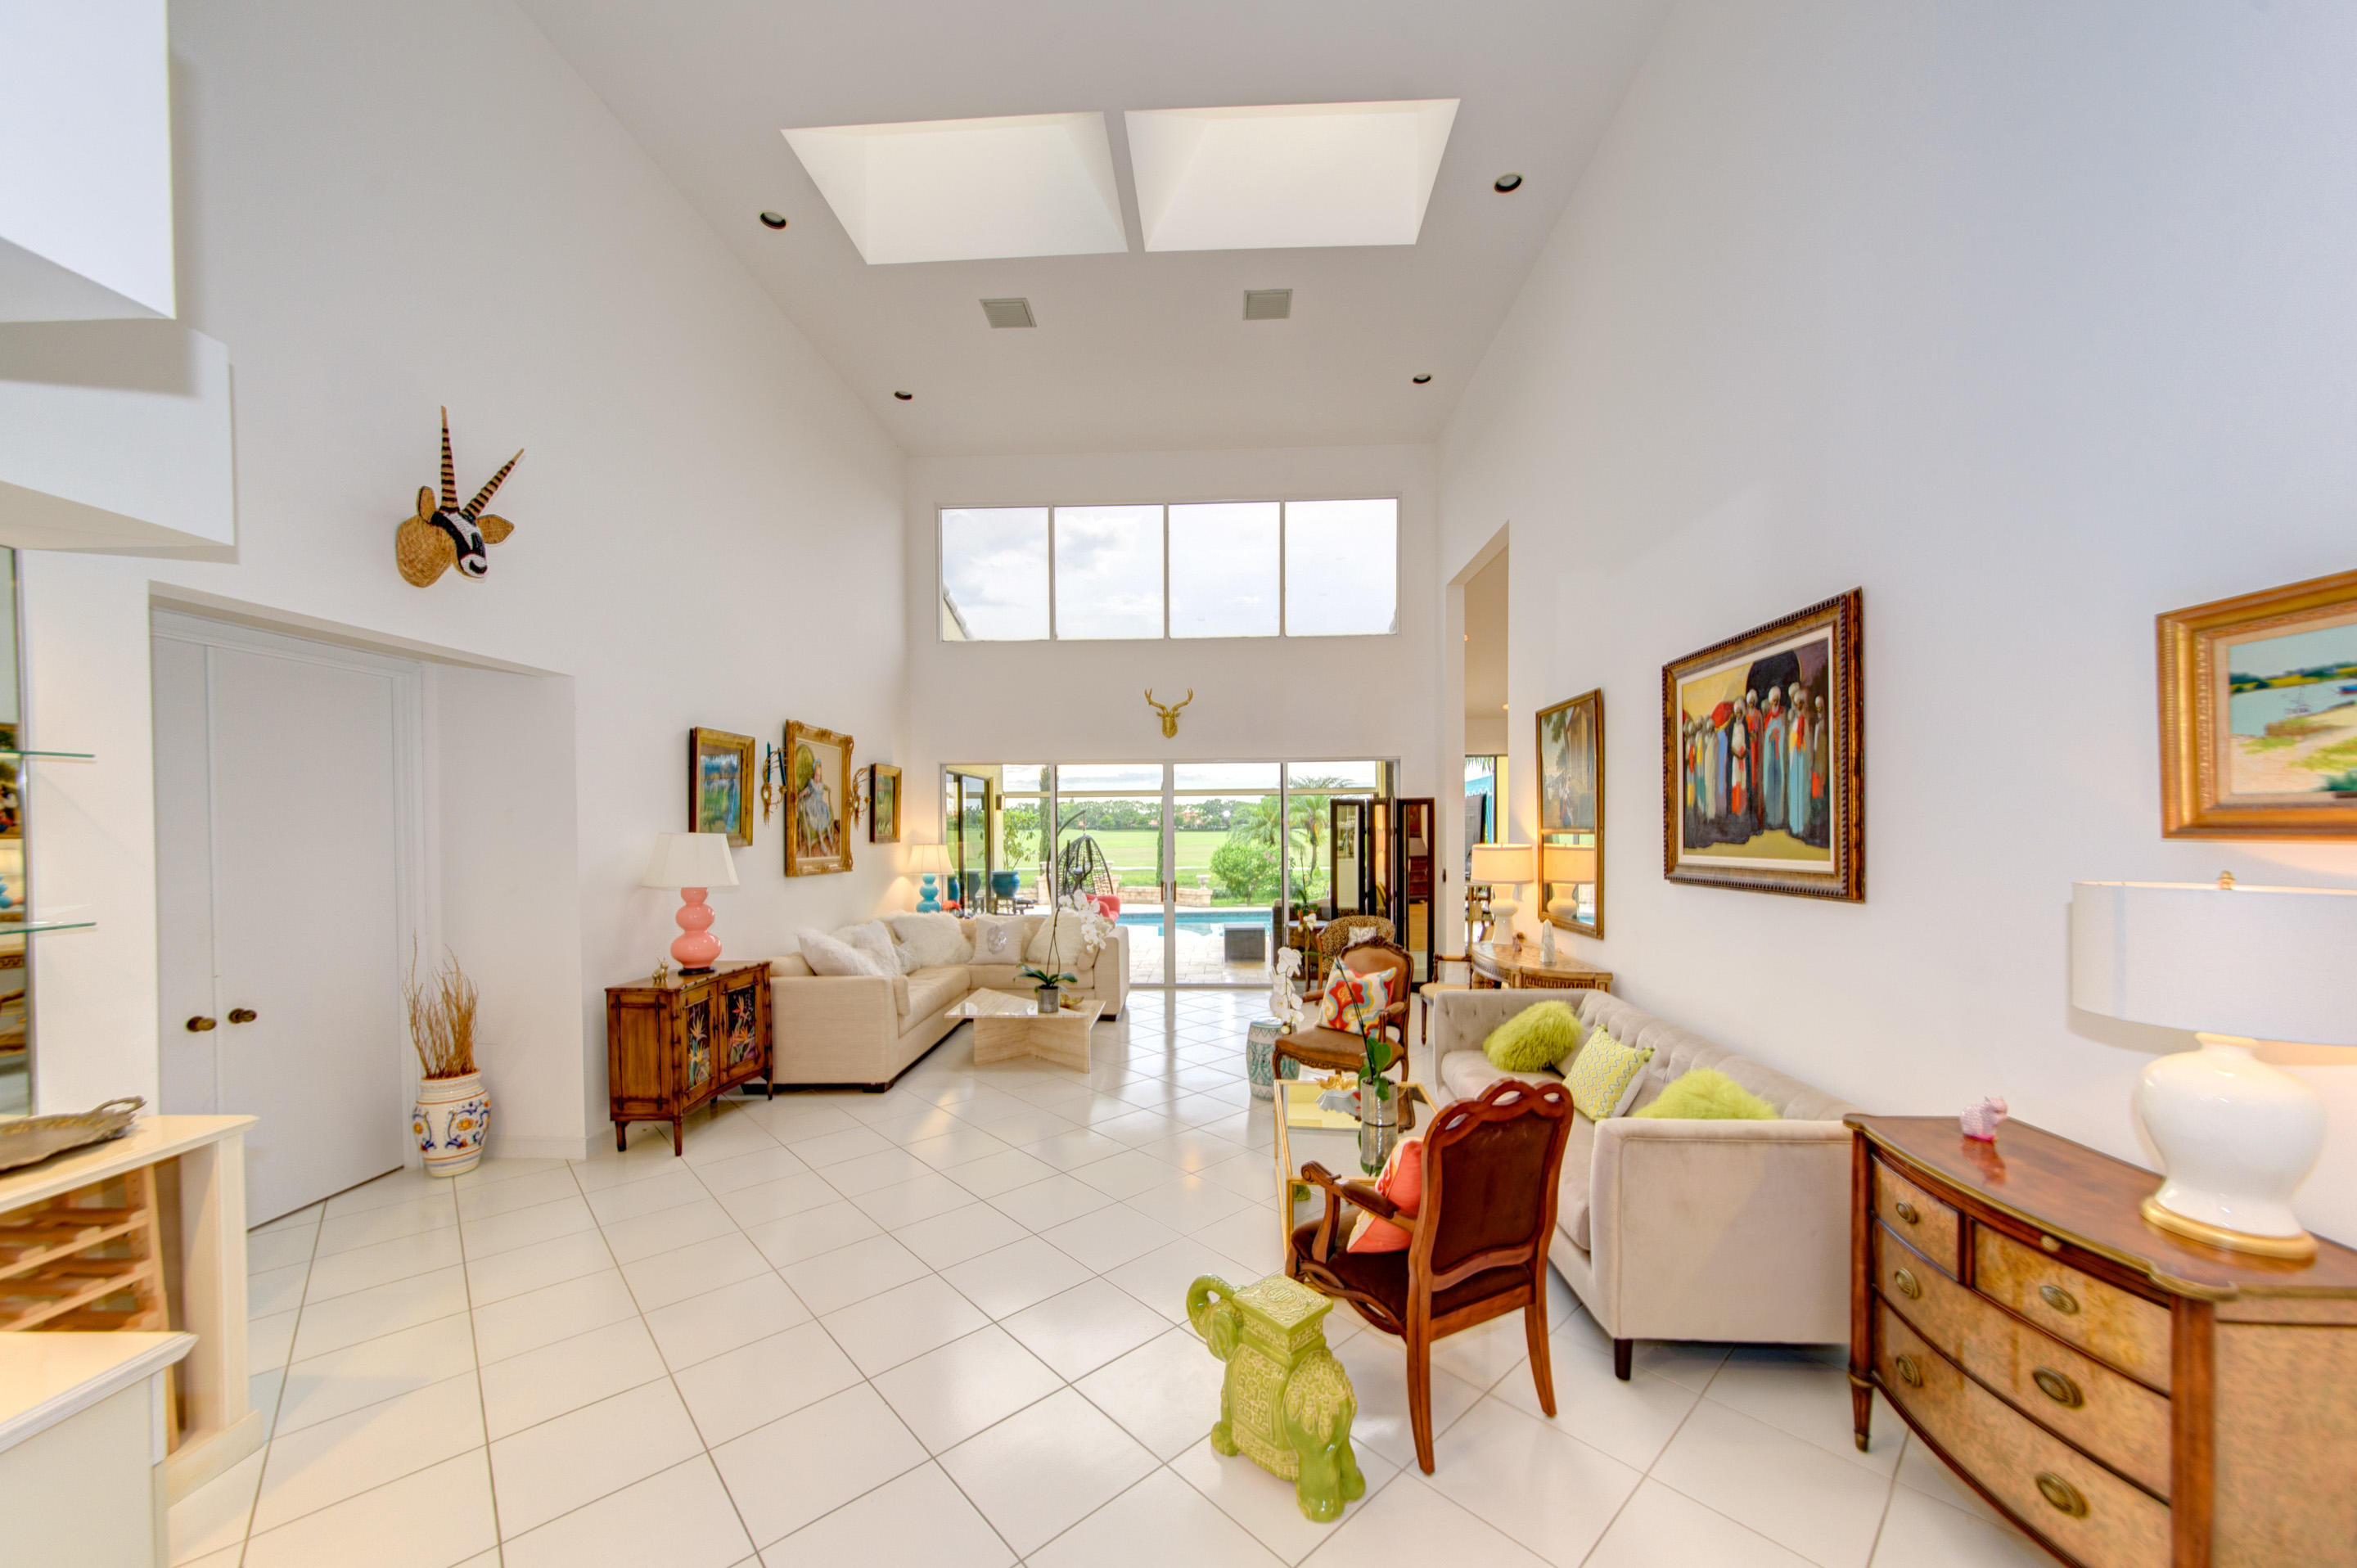 2425 Golf Brook Drive, Wellington, Florida 33414, 4 Bedrooms Bedrooms, ,5.1 BathroomsBathrooms,Single Family,For Rent,PALM BEACH POLO GOLF AND COUNTRY CLUB,Golf Brook,RX-10450494